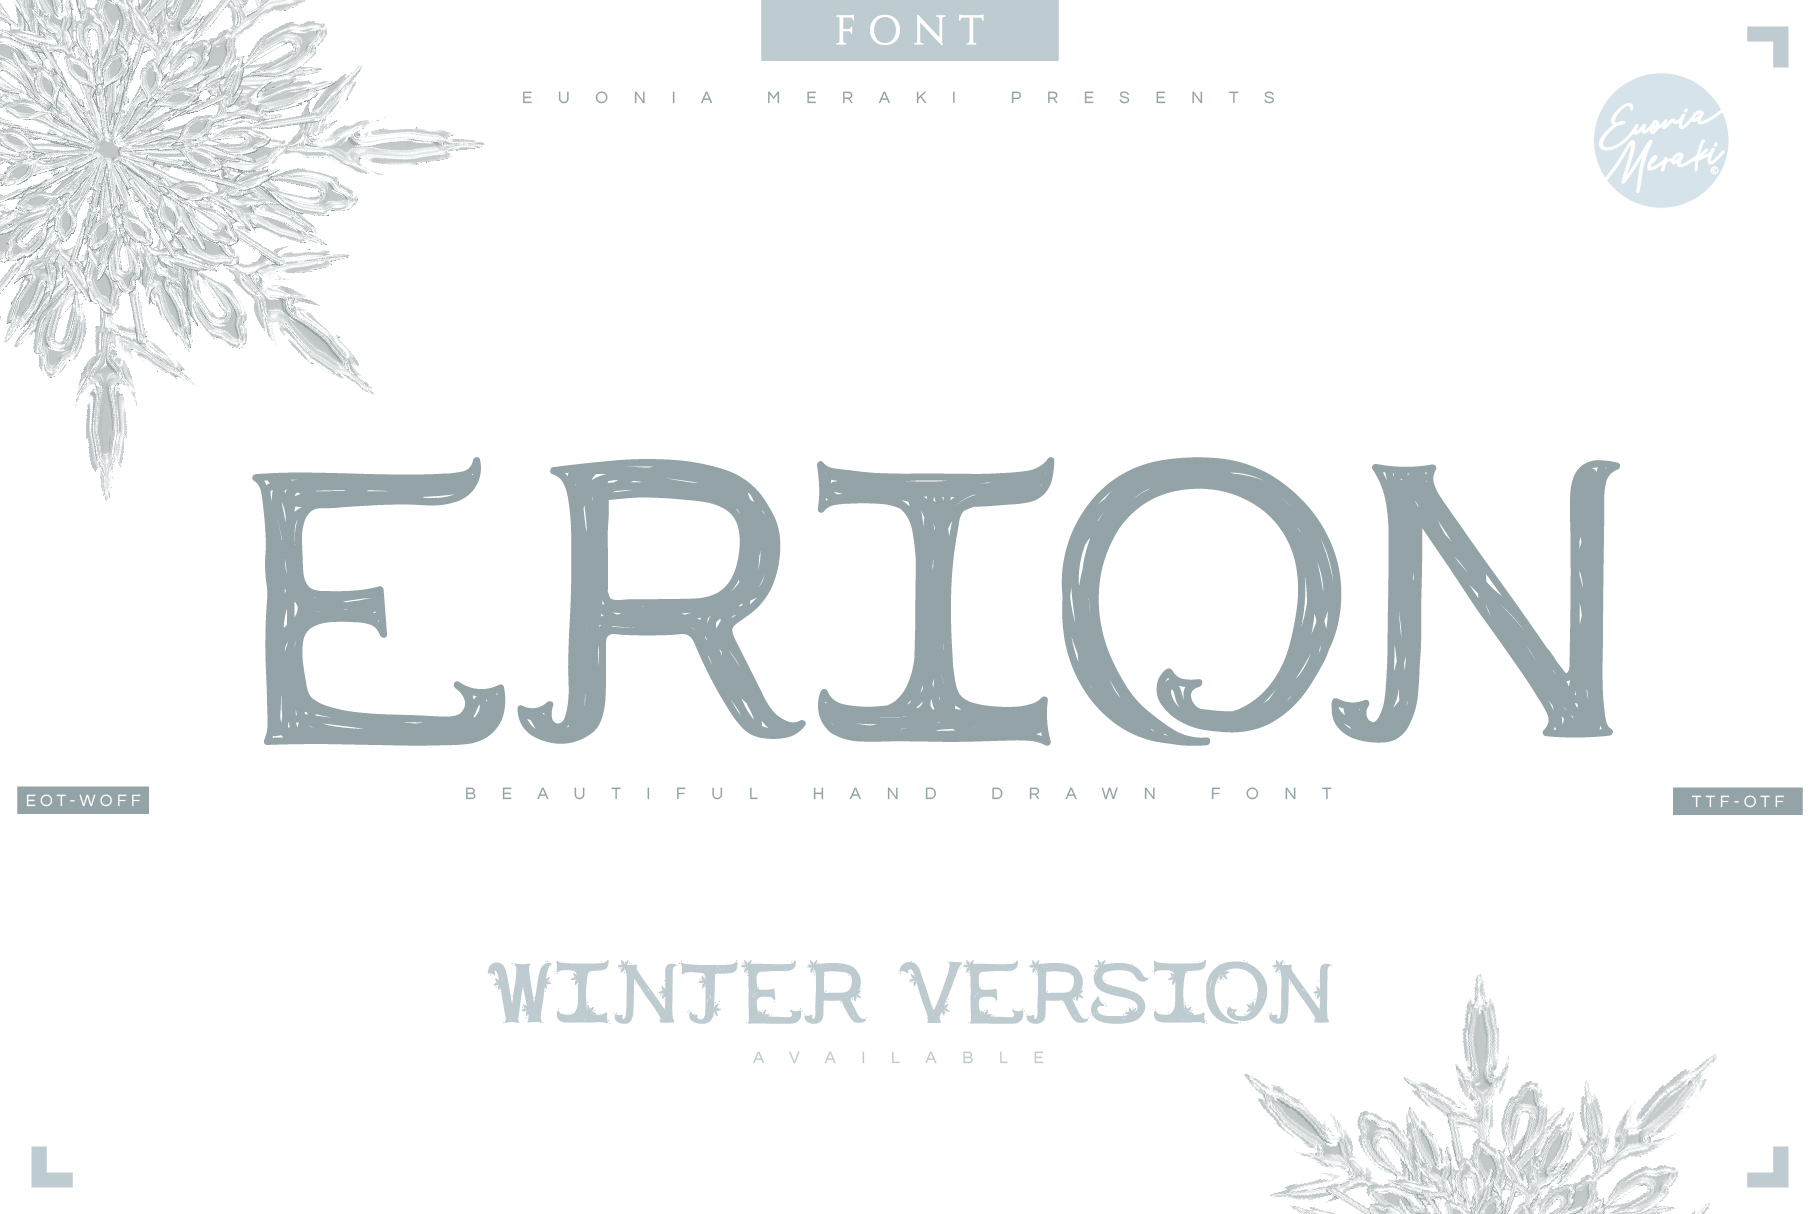 4in1 ERION FONT - Christmas Winter Version example image 1